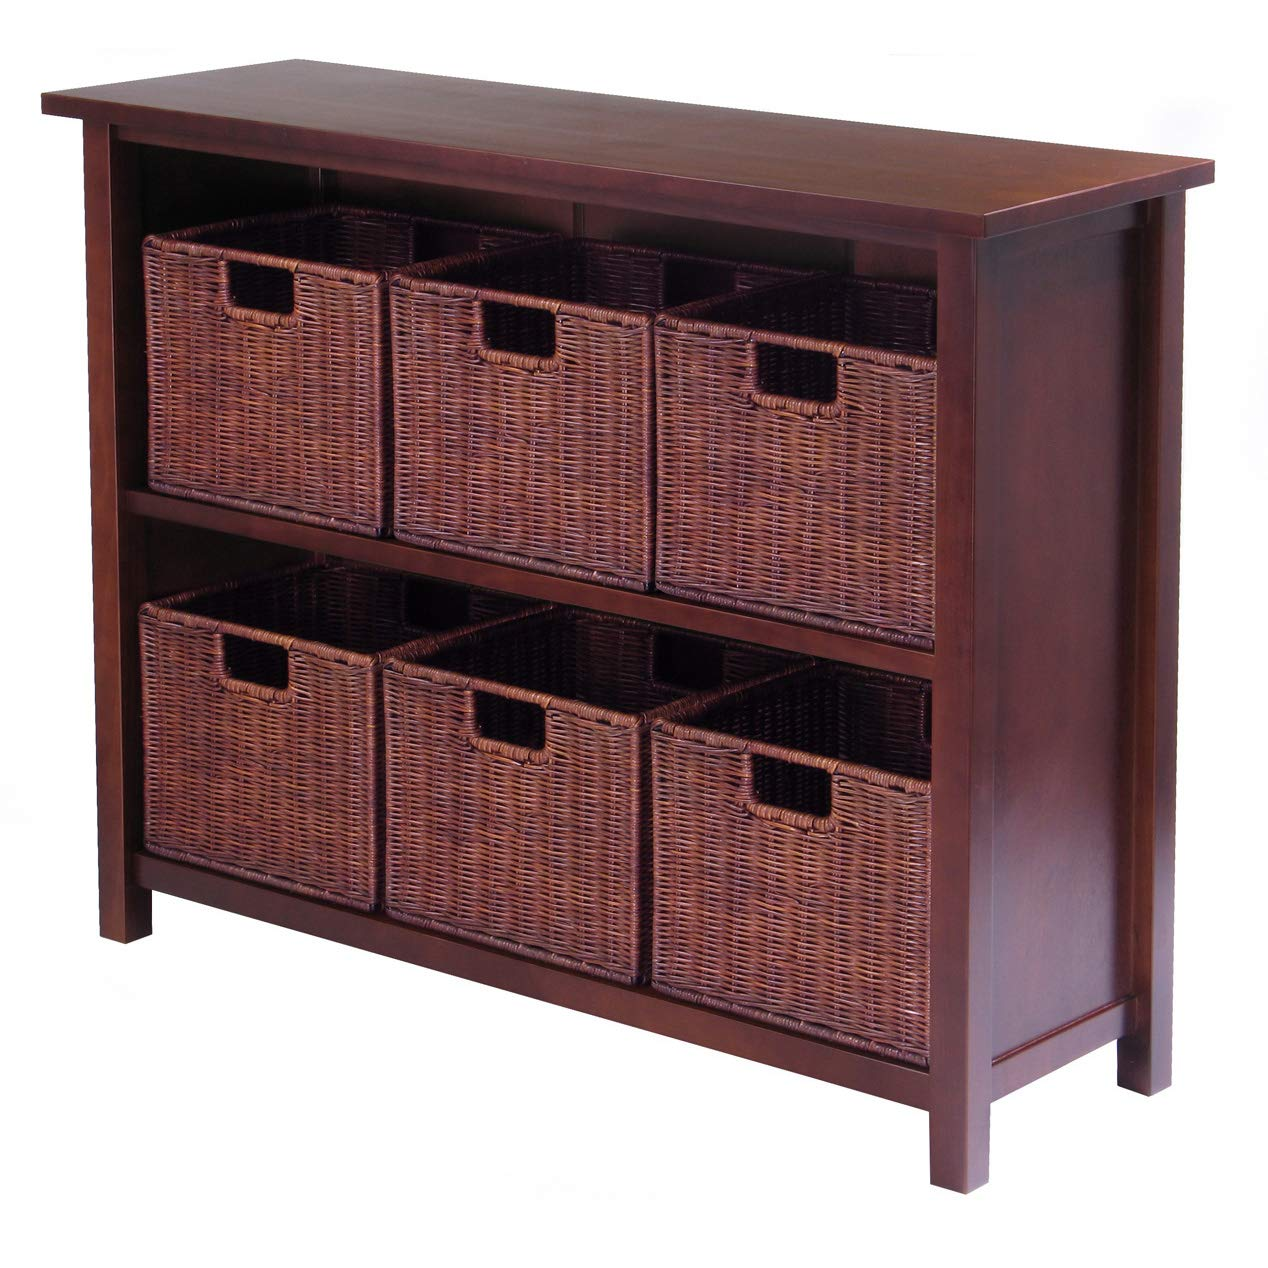 Winsome Wood Milan Wood 3 Tier Open Cabinet and 6 Rattan Baskets in Walnut Finish